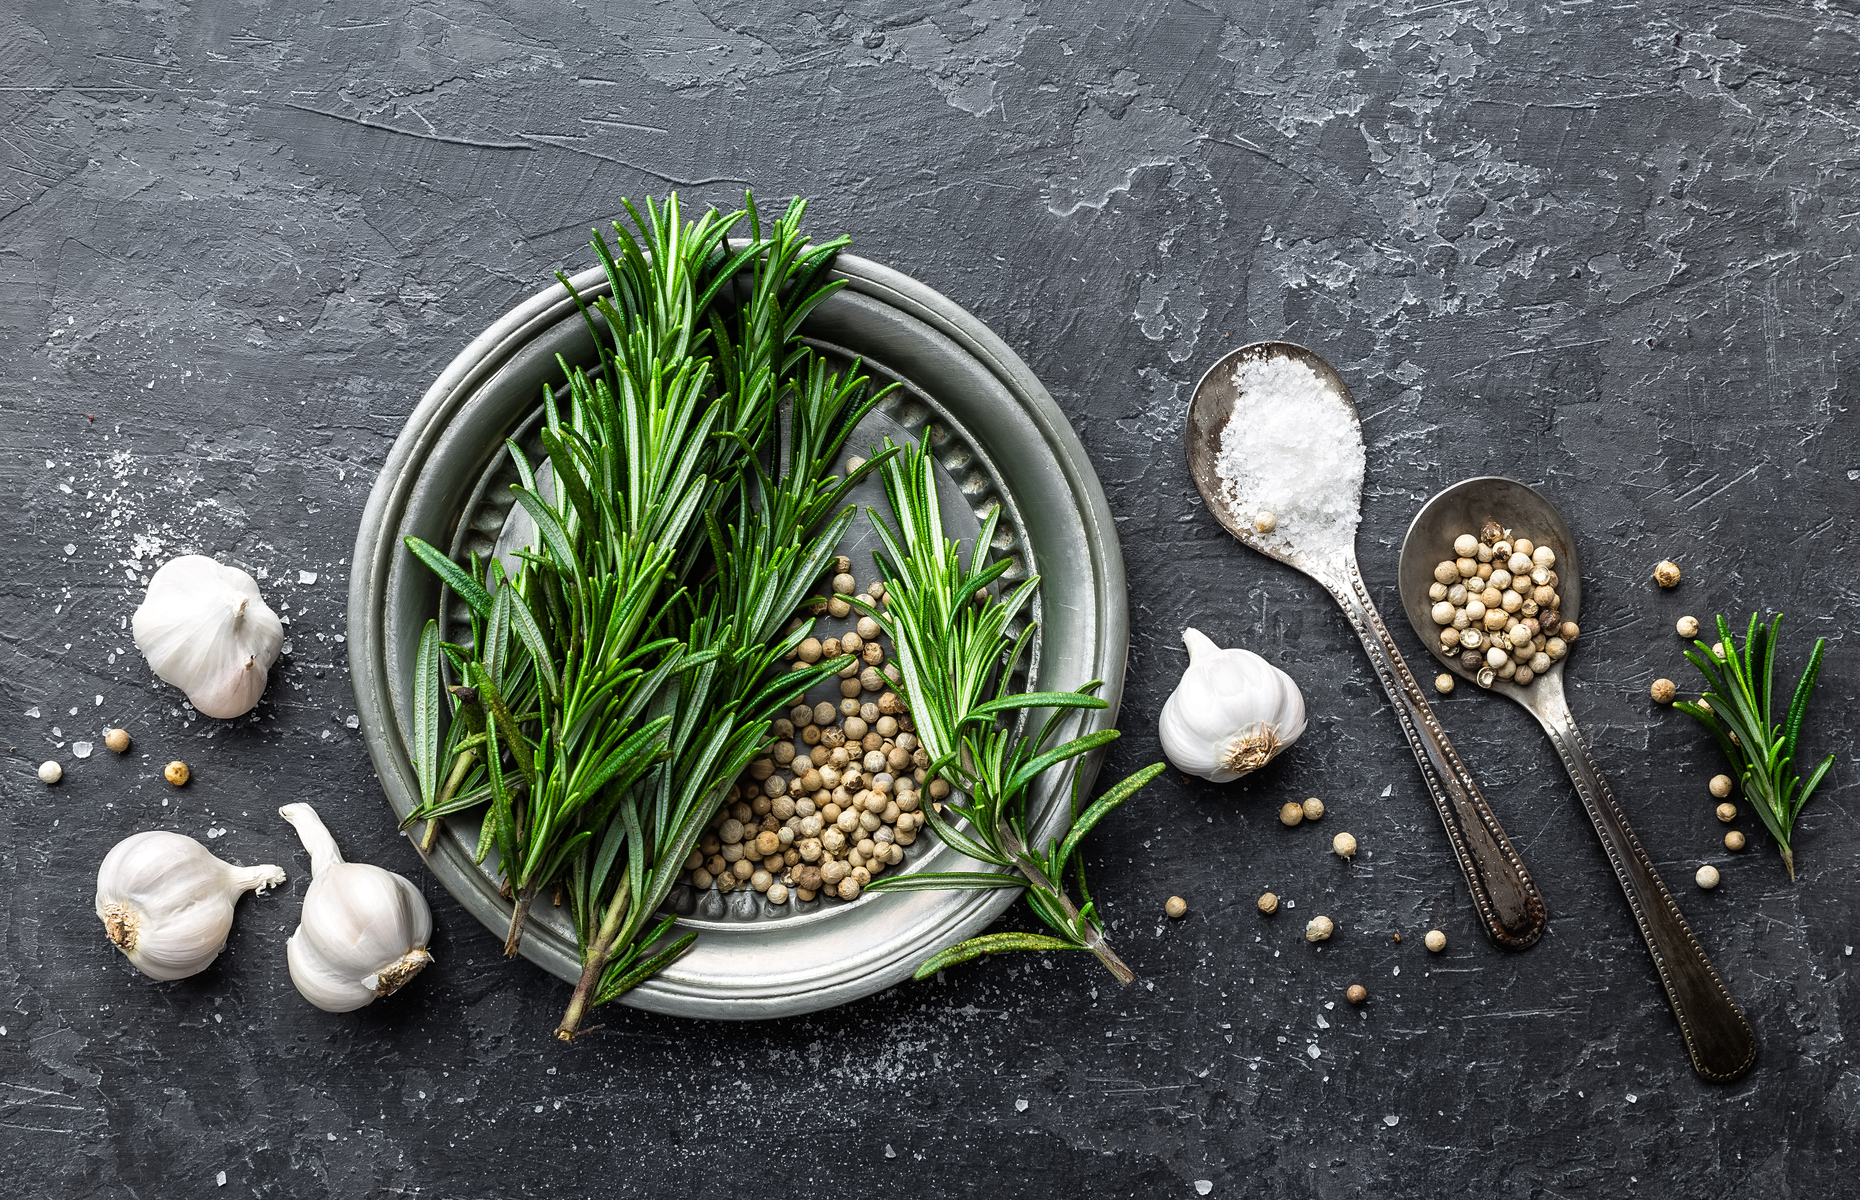 Rosemary, garlic and white peppercorns (Image: Sea Wave/Shutterstock)